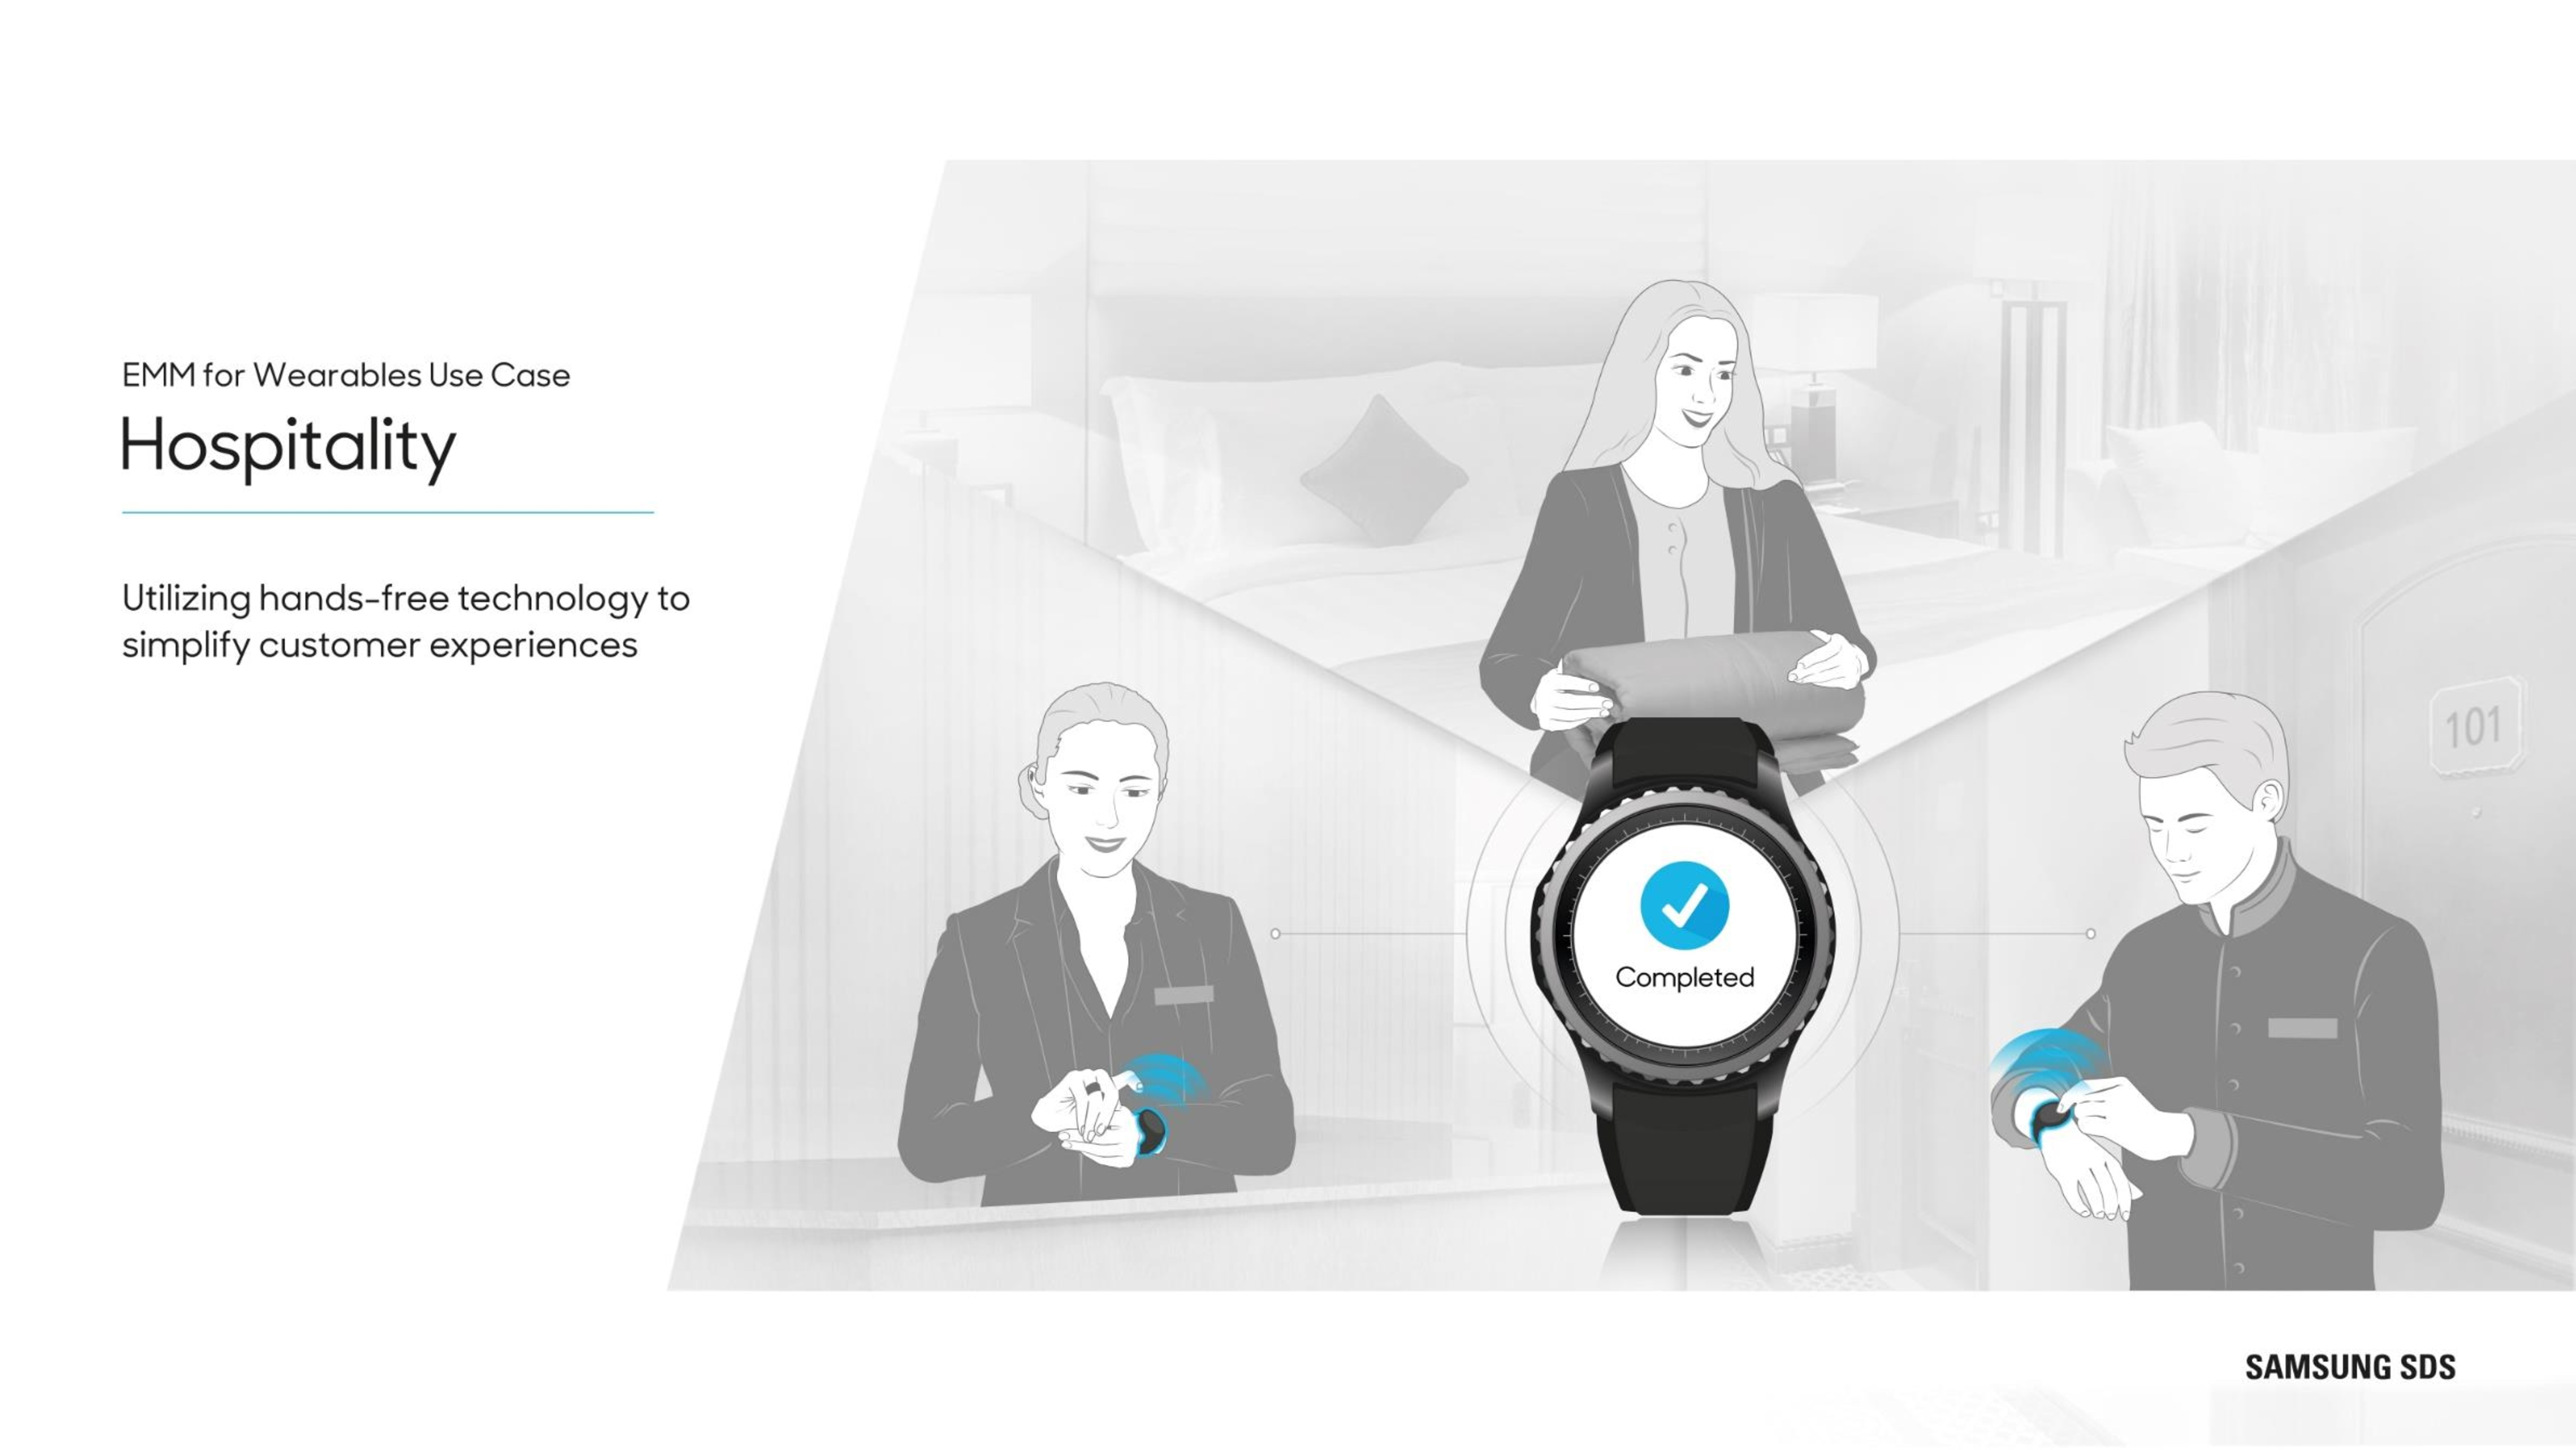 Wearables in Hospitality Utilizing hands-free technology to simplify customer experiences